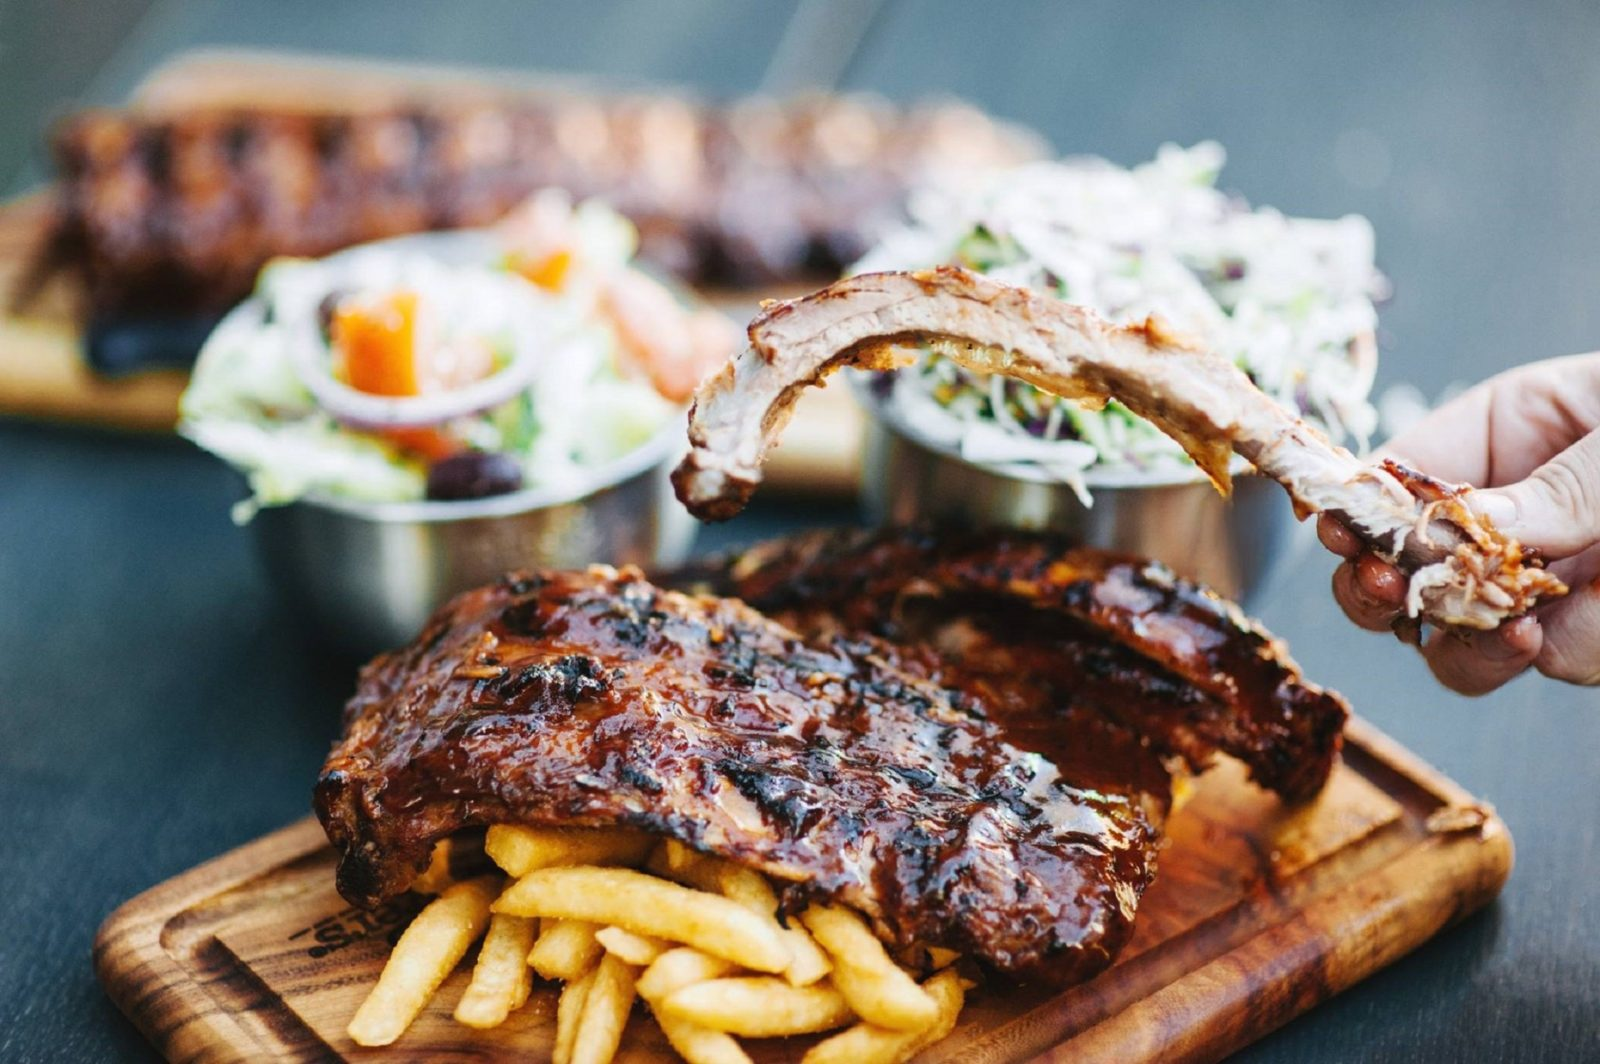 Ribs and Burgers on William Street, Perth, Western Australia